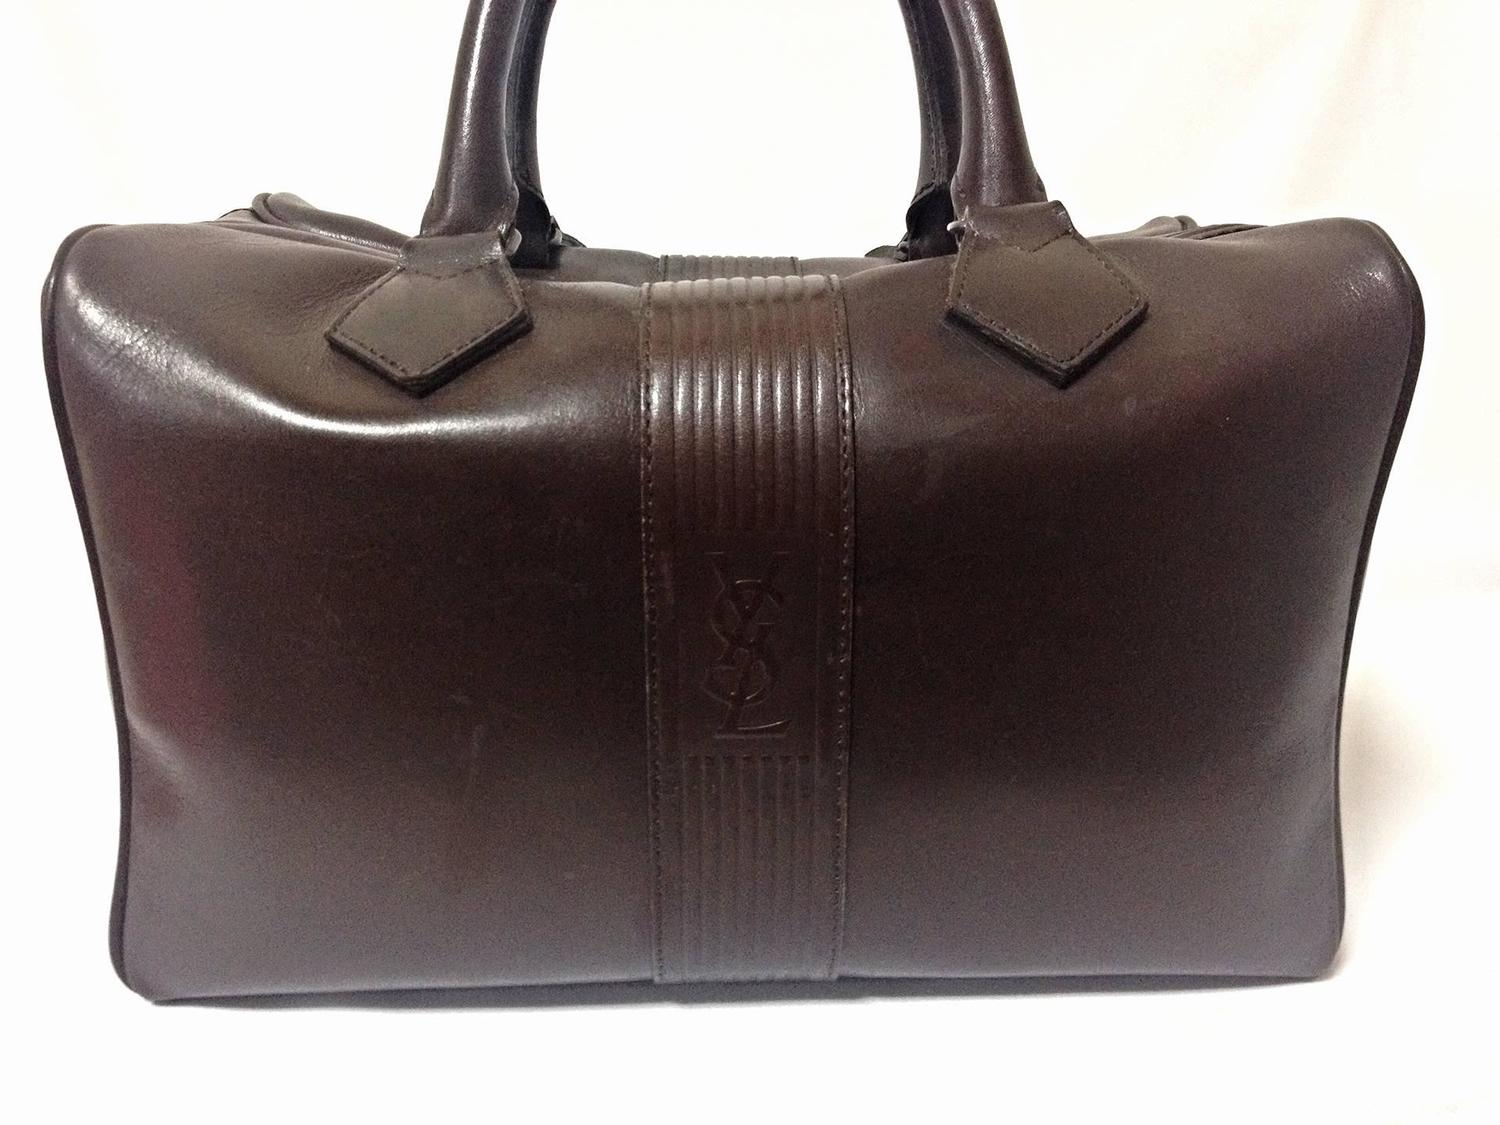 69a9ea6038bf ... yves st laurent bags - Vintage Yves Saint Laurent genuine dark brown  leather daily use .